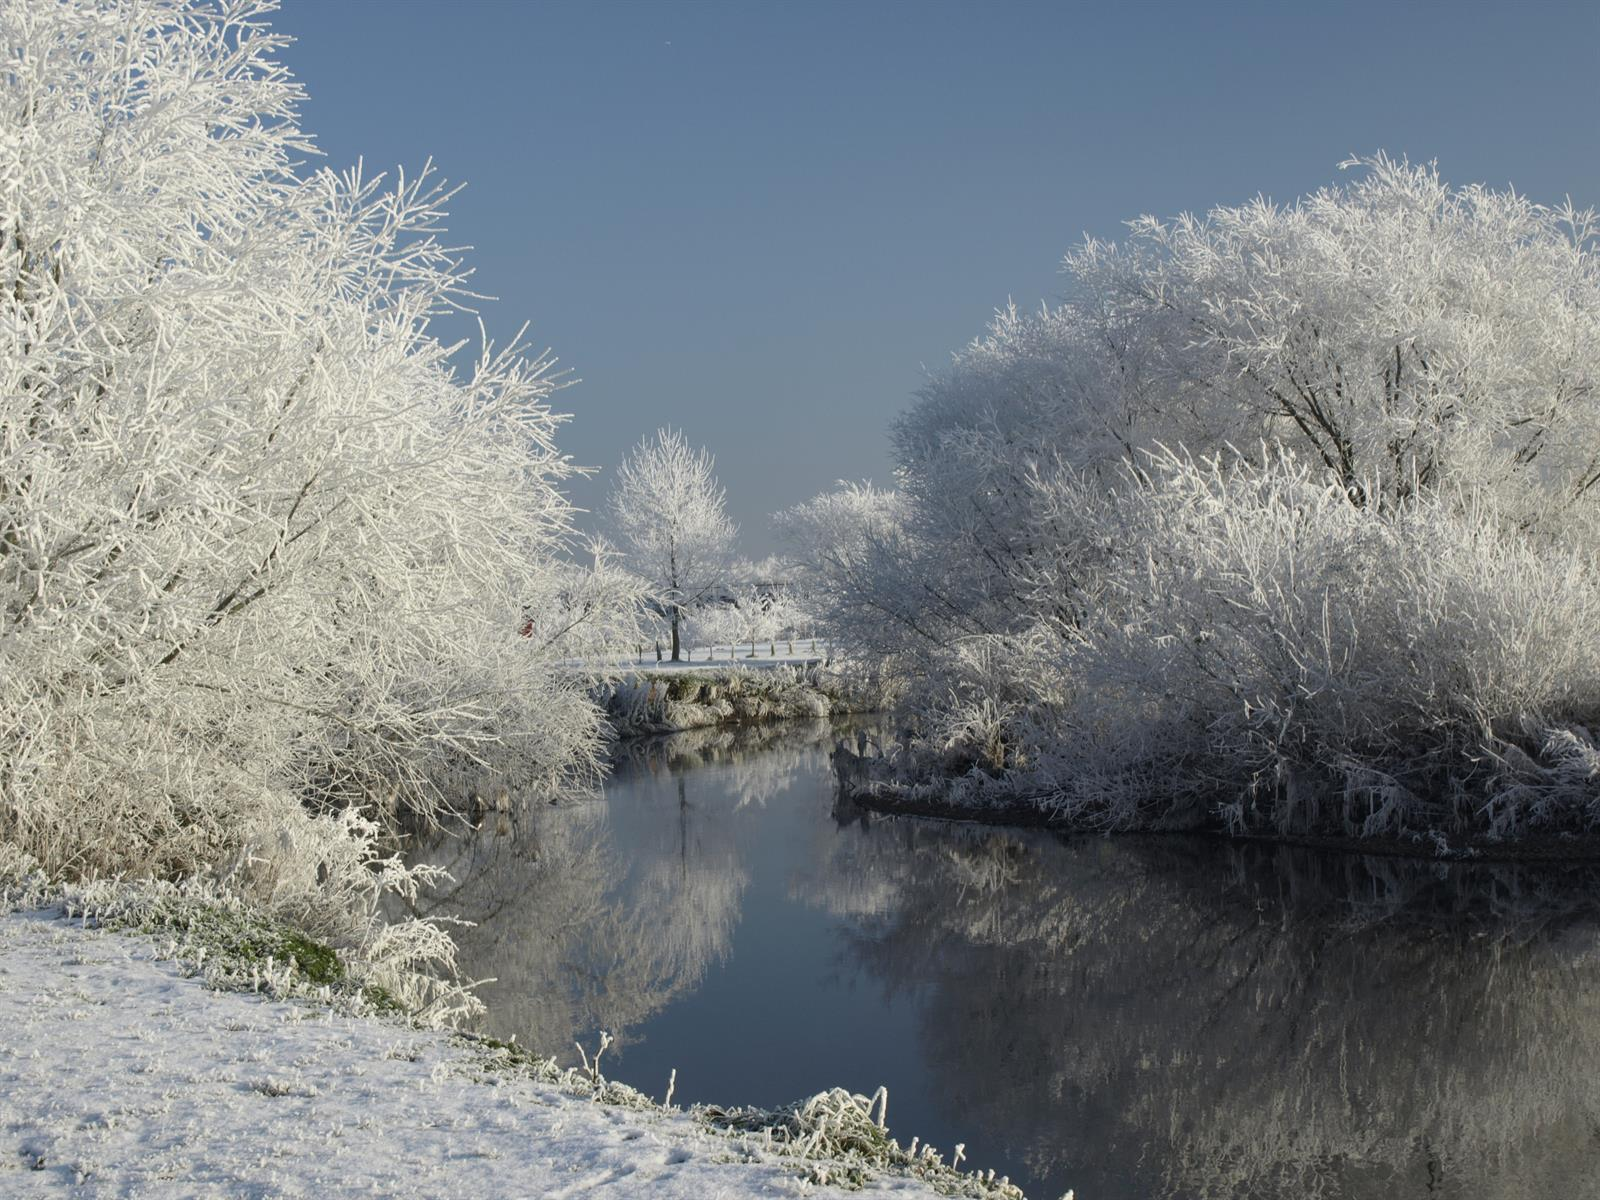 Frosty image of the River Tame